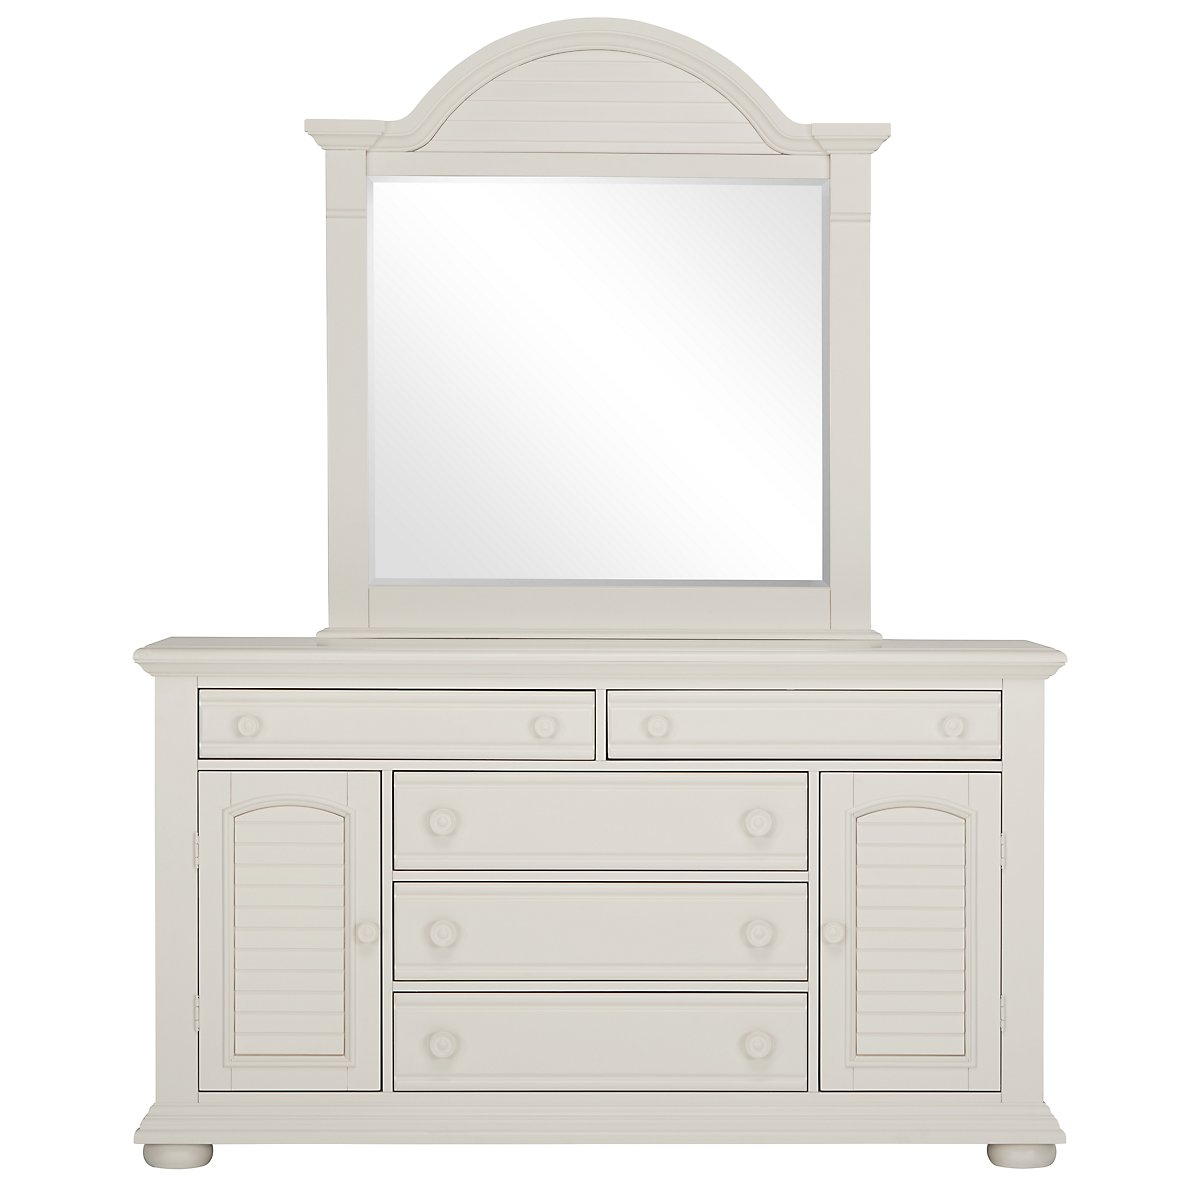 Quinn White Wood Large Dresser & Mirror